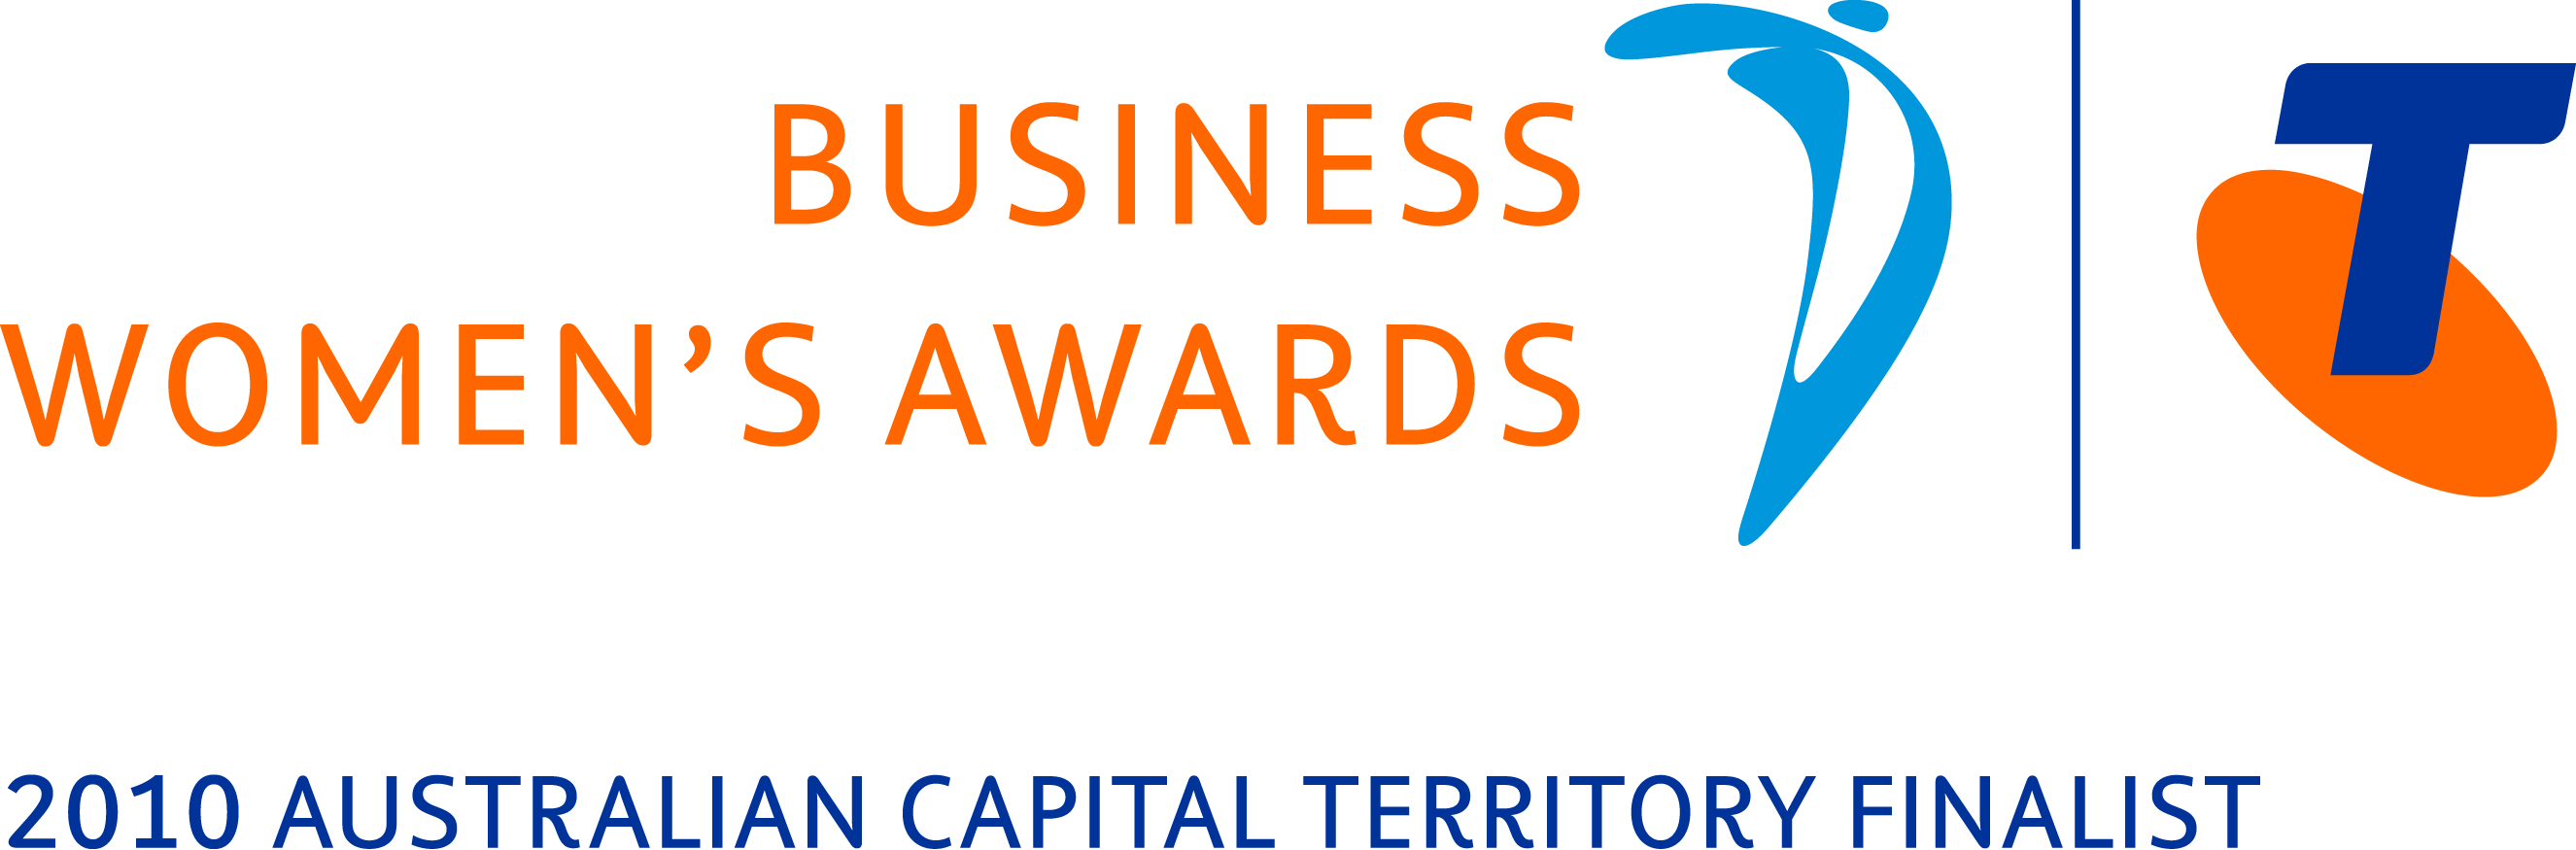 Special Finalists Logo for Telstra Business Women's Awards